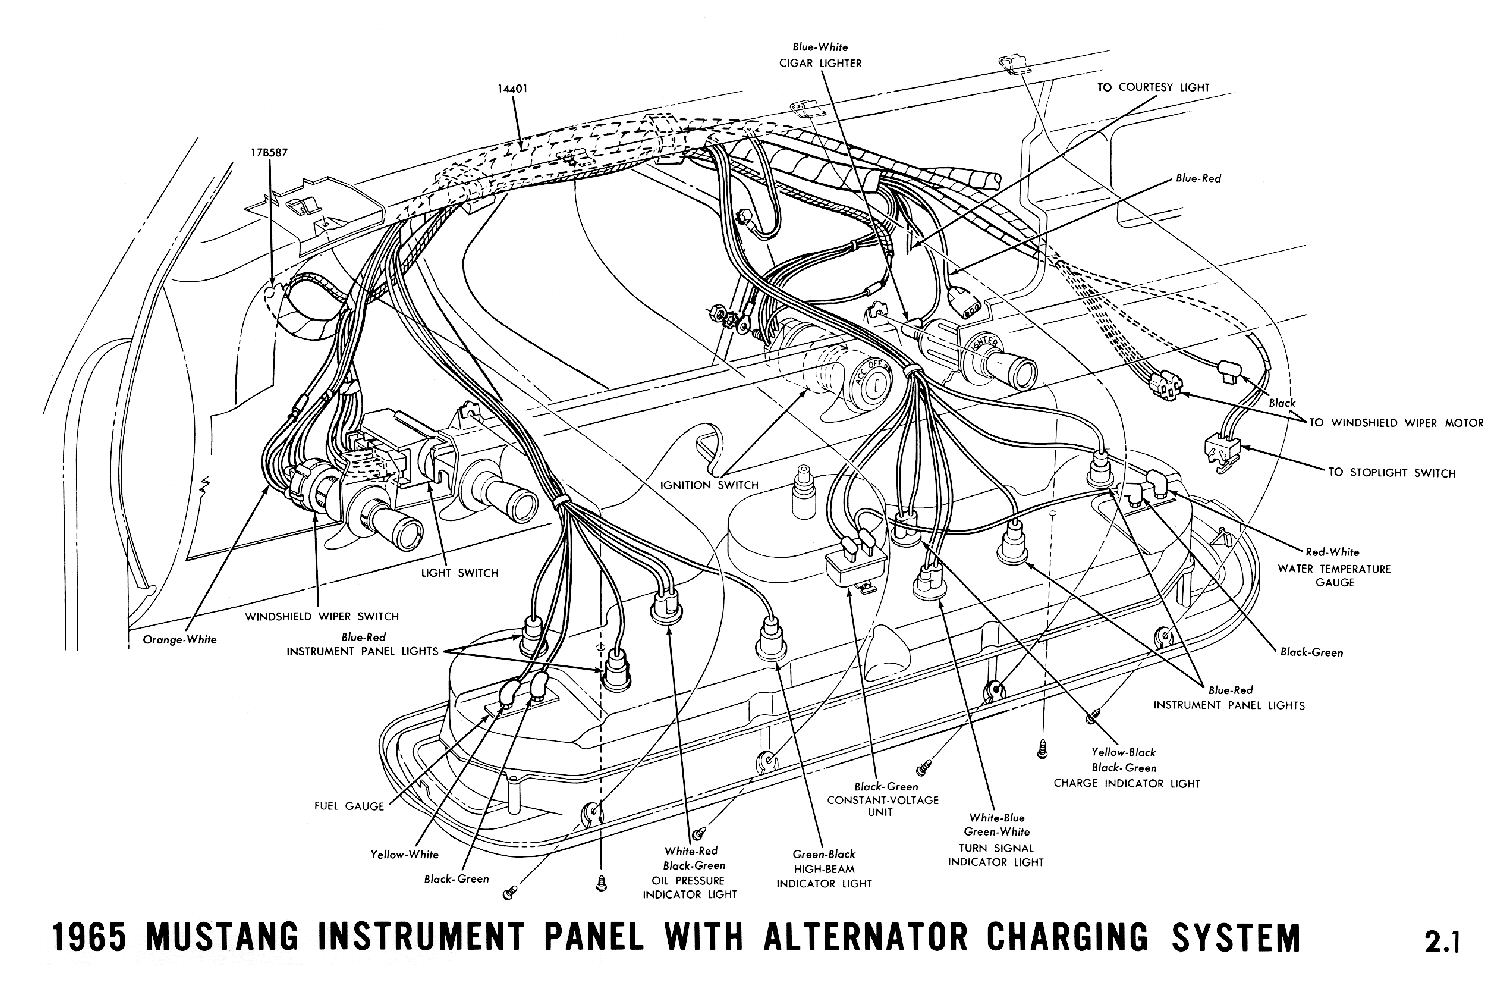 1965 mustang wiring diagrams average joe restoration Fuse Panel for 2000 Mustang  GT 4.6L 1996 Ford Mustang Fuse Box Diagram